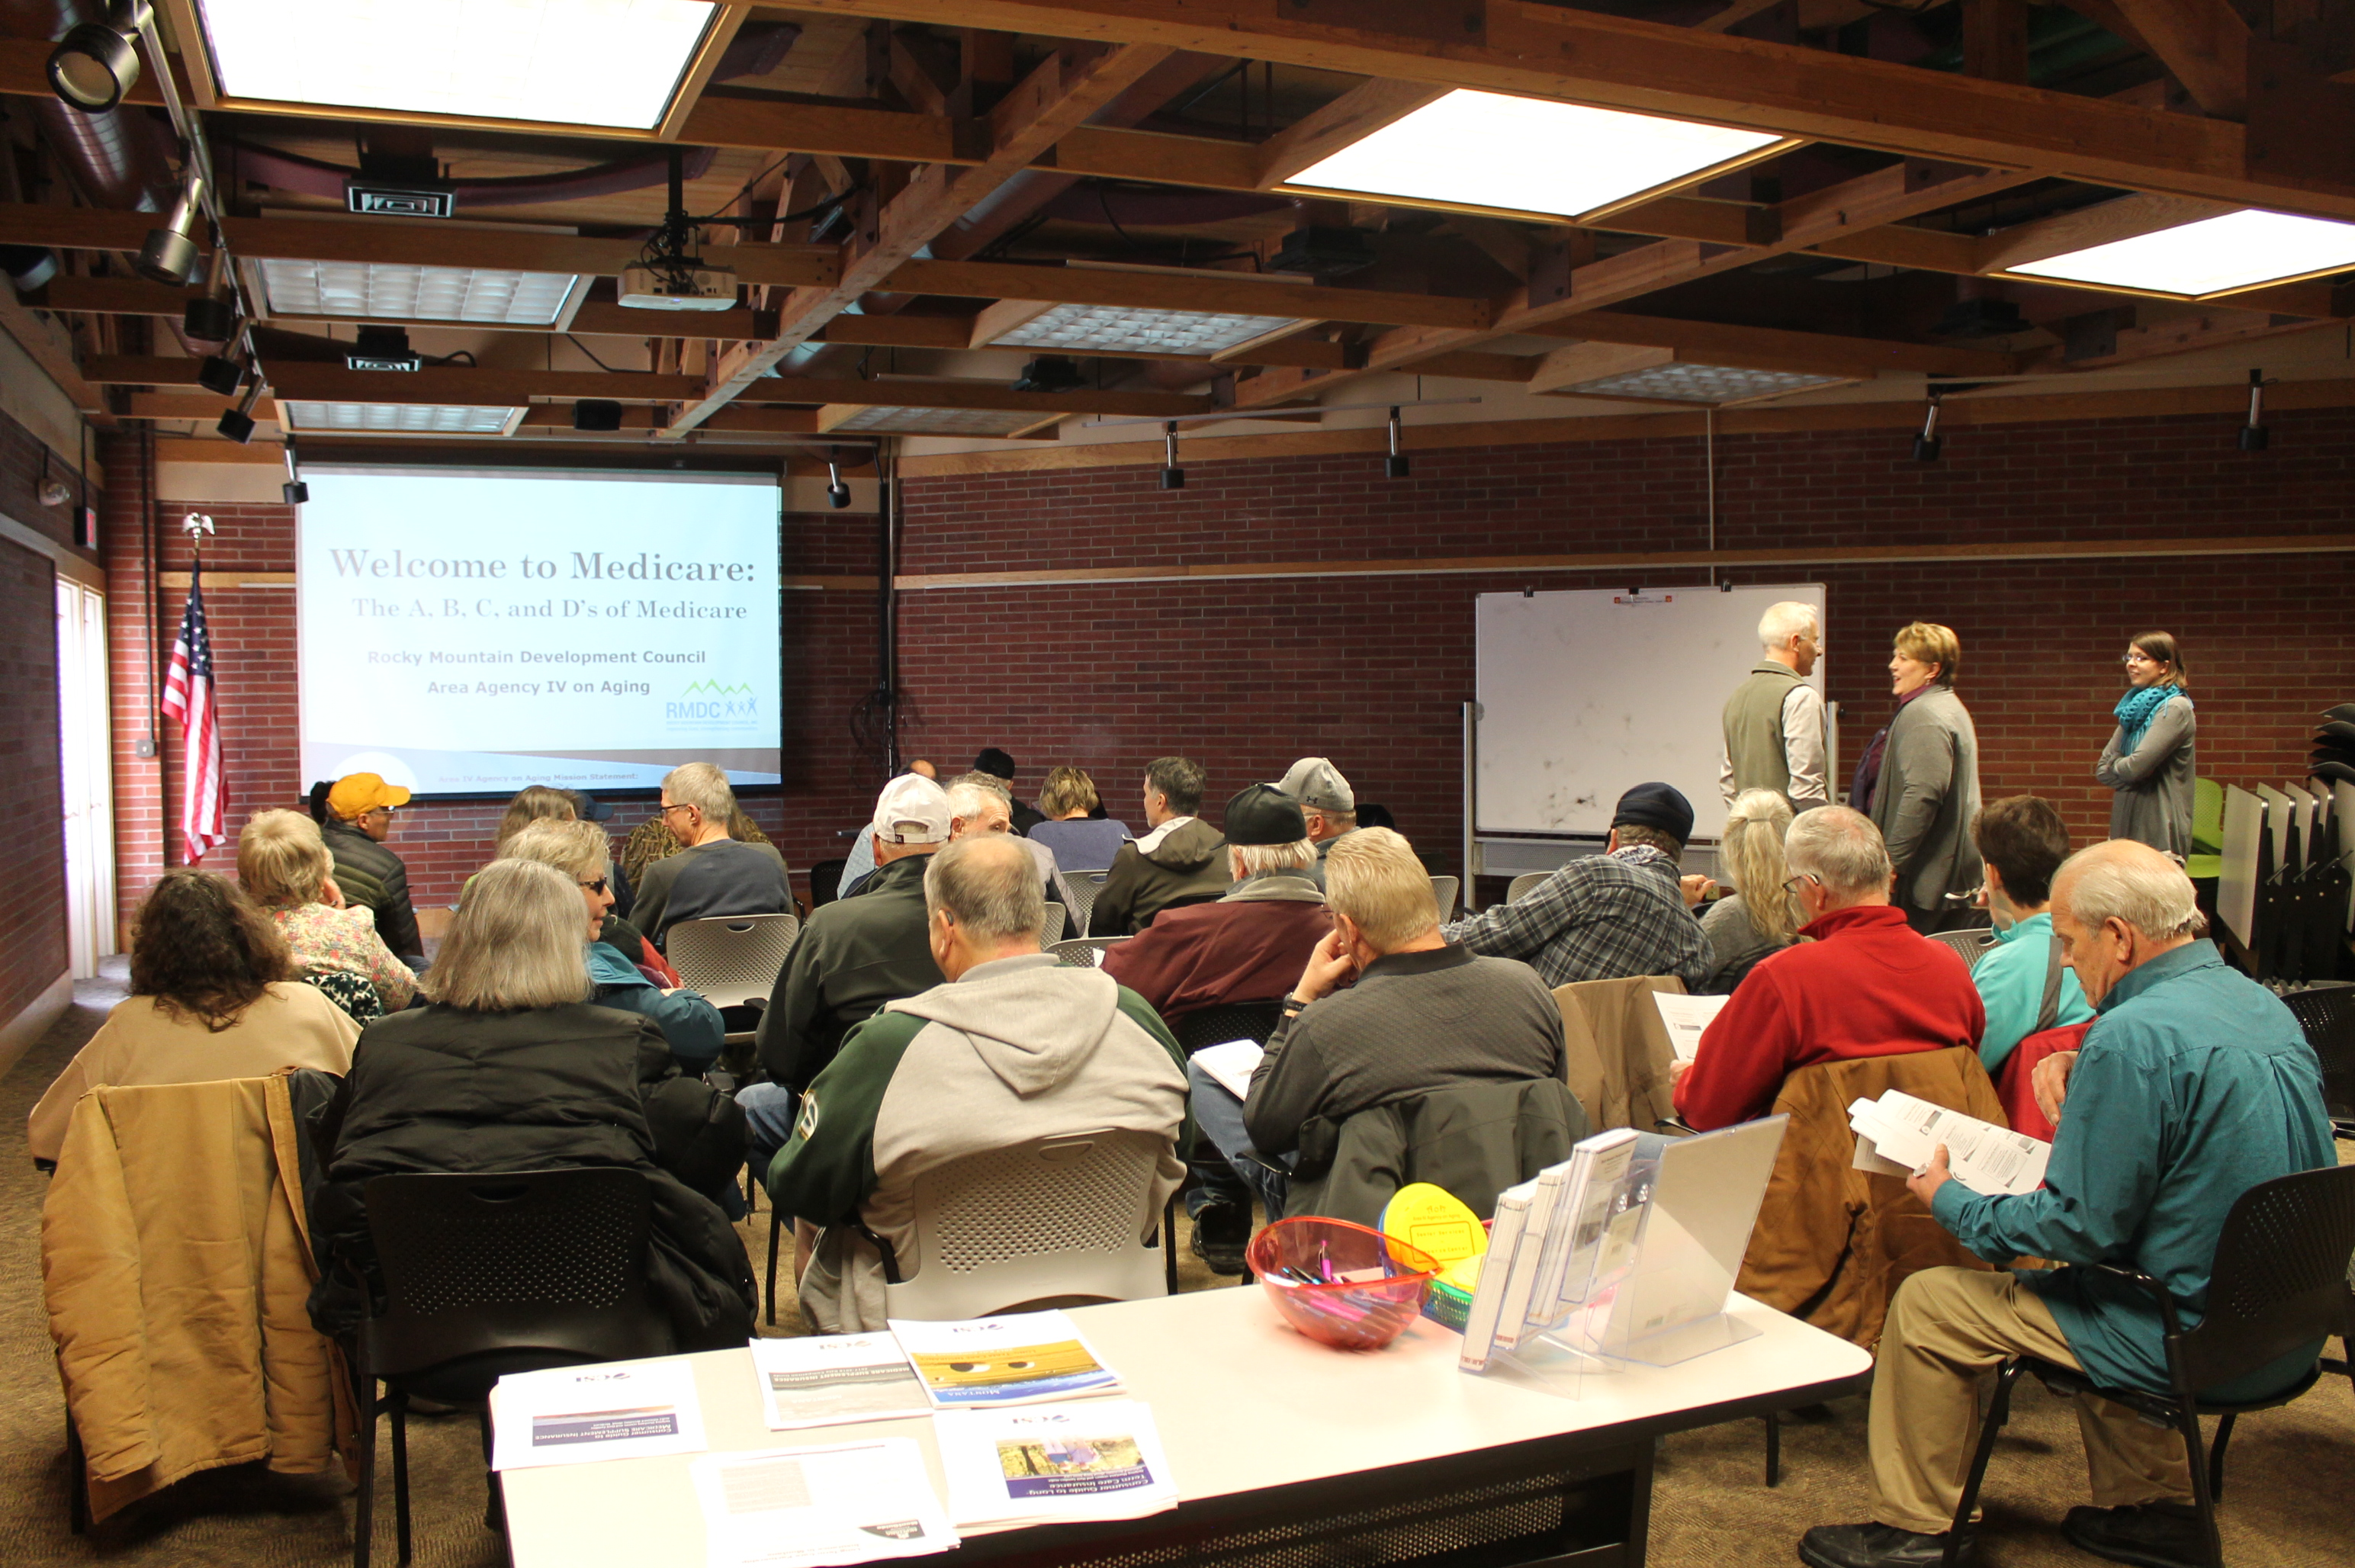 Pictured: A classroom styled Welcome to Medicare session hosted at the Lewis & Clark Library in Helena, MT.